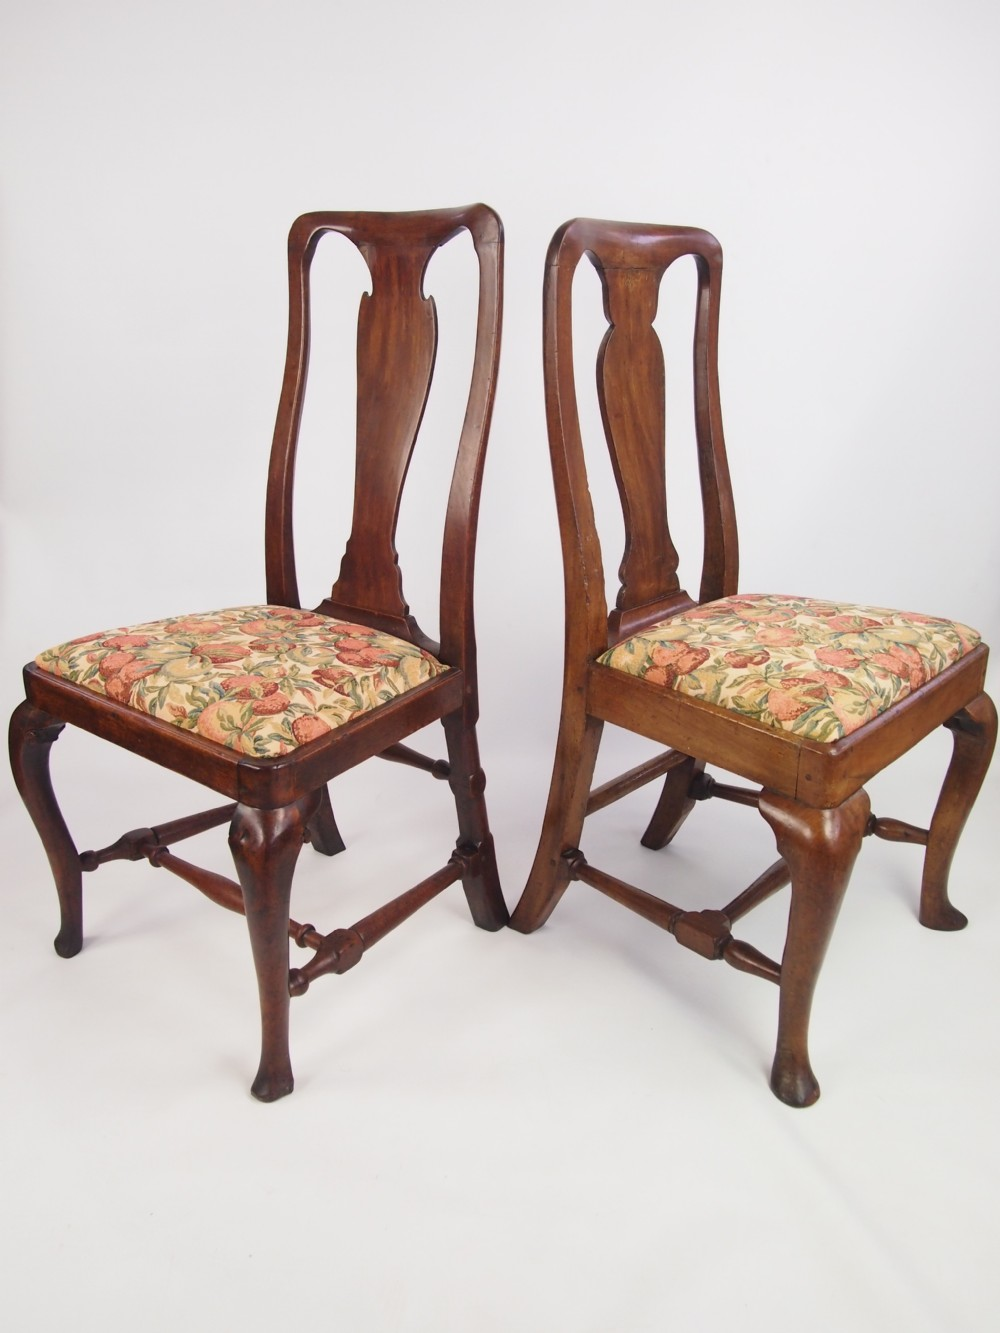 Antiques the uk 39 s largest antiques website for Queen anne furniture